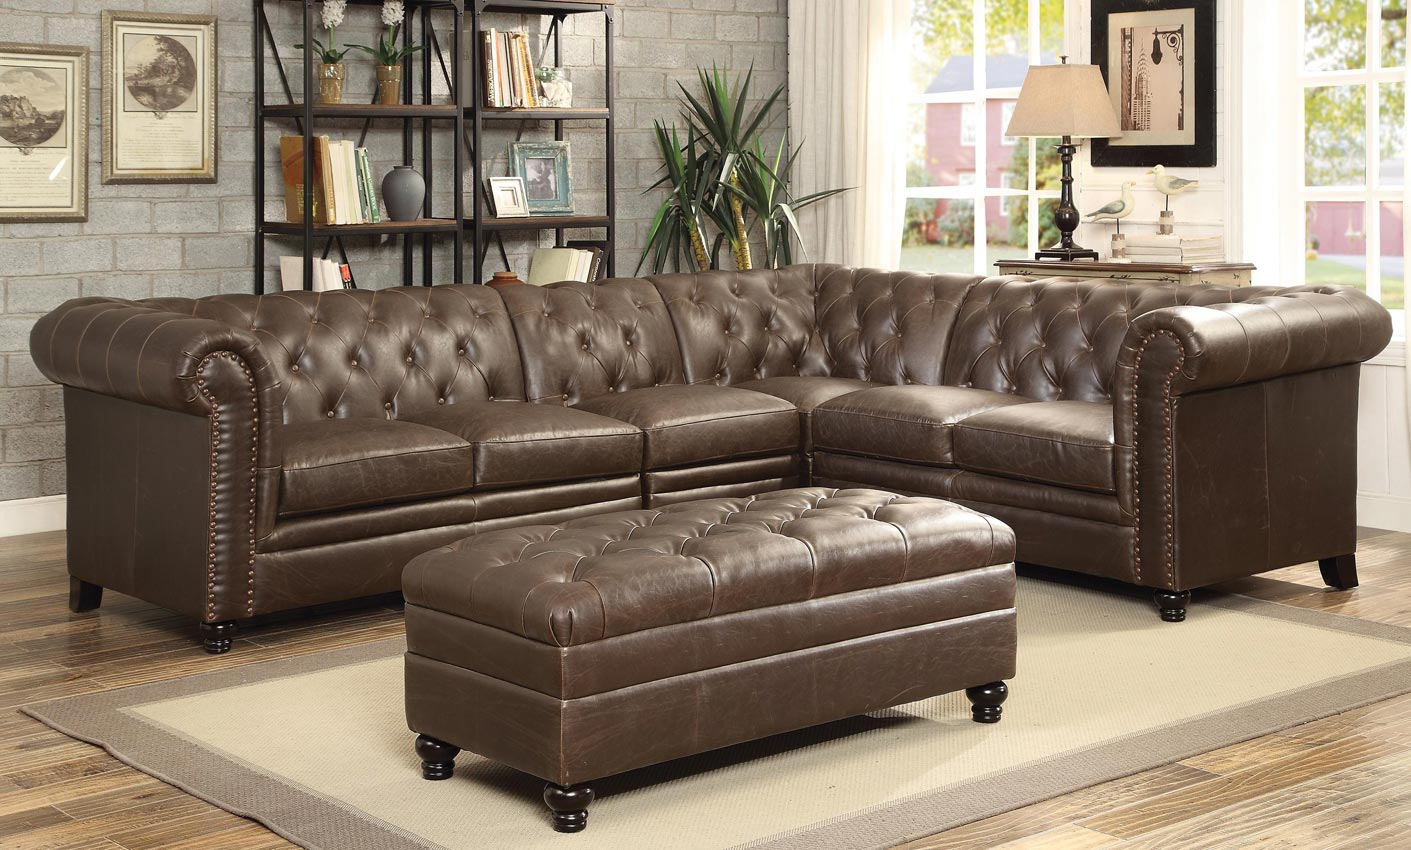 Swell Button Tufted Sectional Sofa With Armless Chair Machost Co Dining Chair Design Ideas Machostcouk